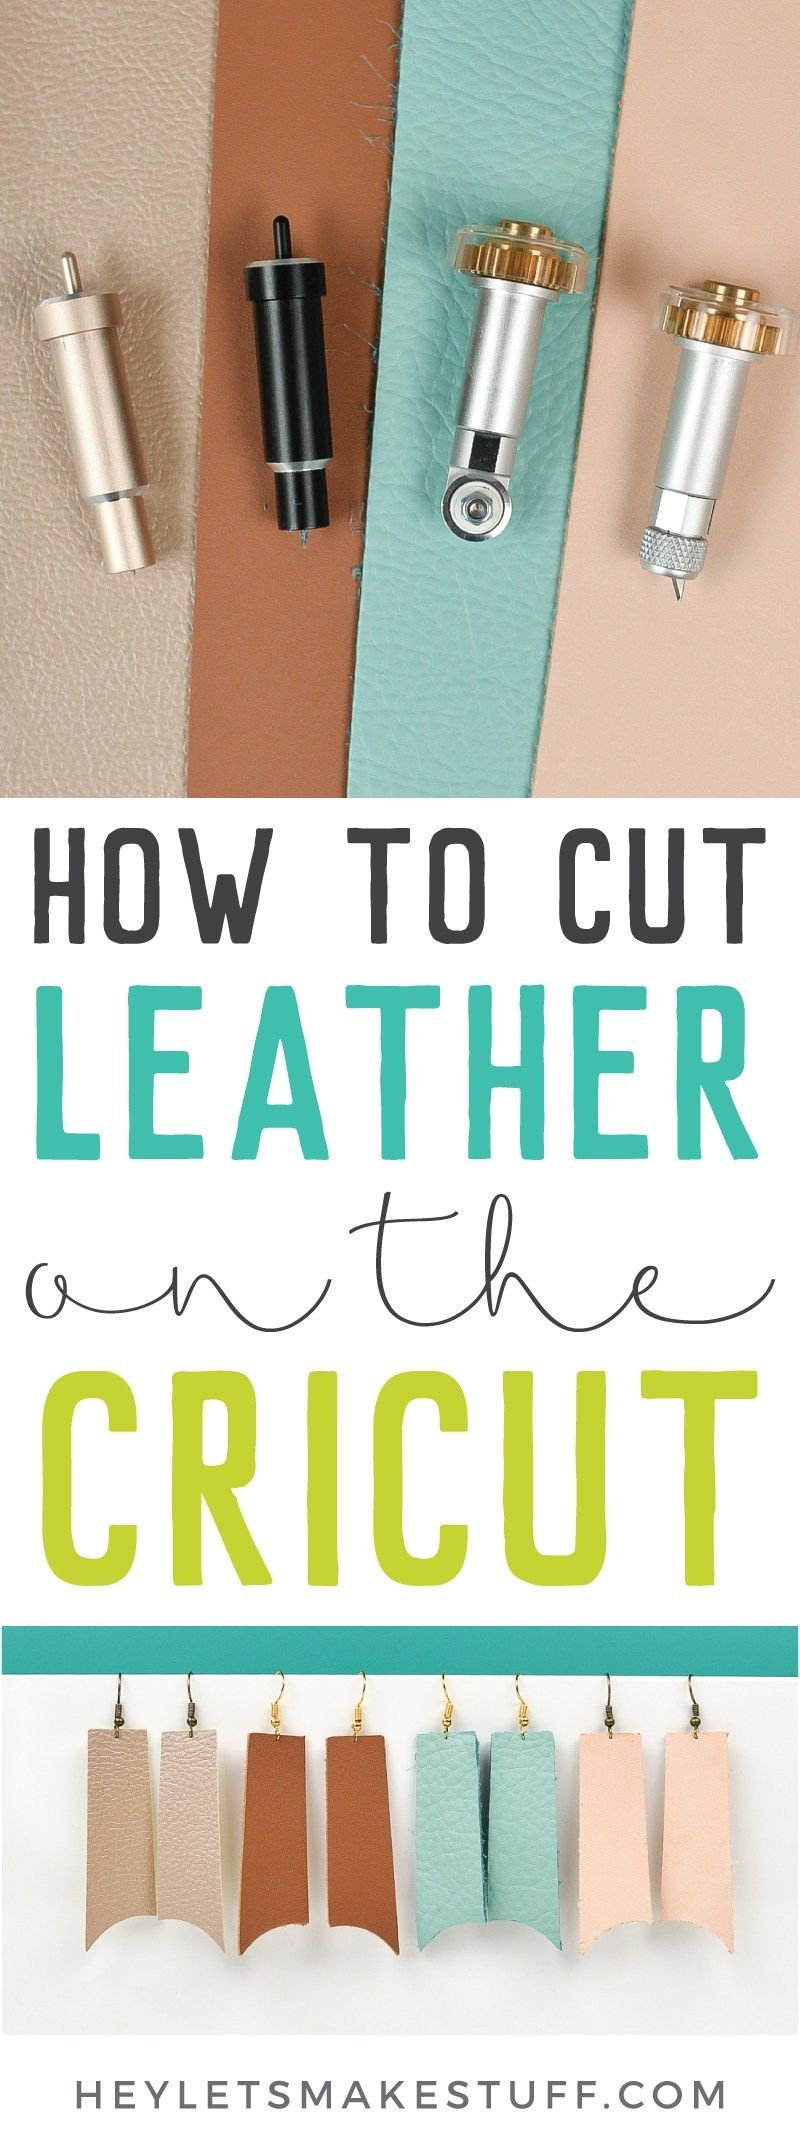 Cut Leather with the Cricut Explore and Maker